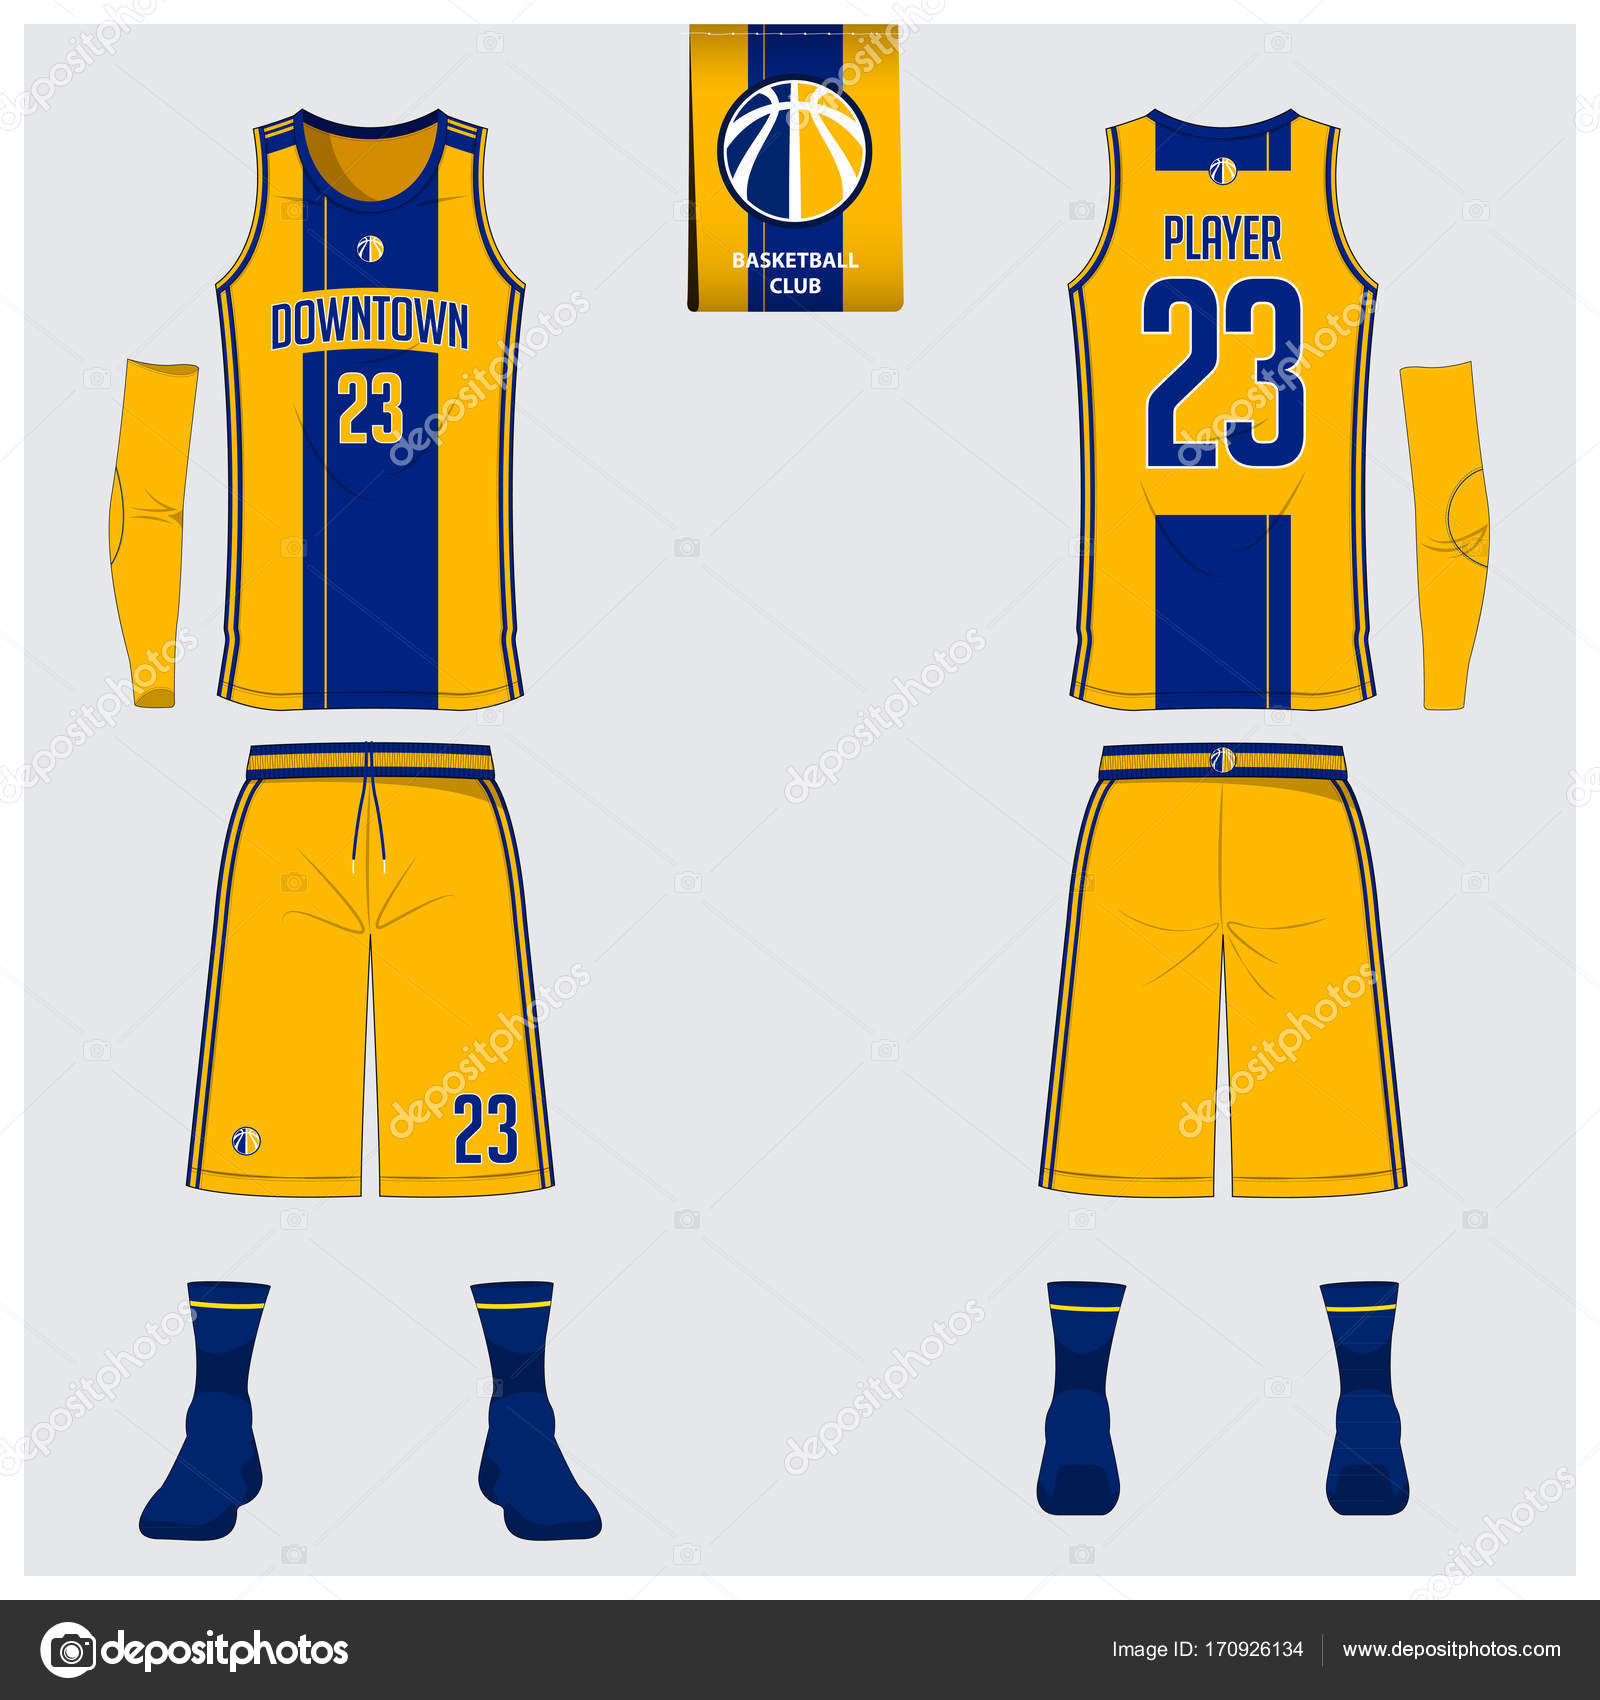 e0dd88790e7 Yellow and blue basketball uniform or jersey, shorts, socks template for  basketball club. Front and back view sport uniform. Tank top t-shirt mock  up with ...